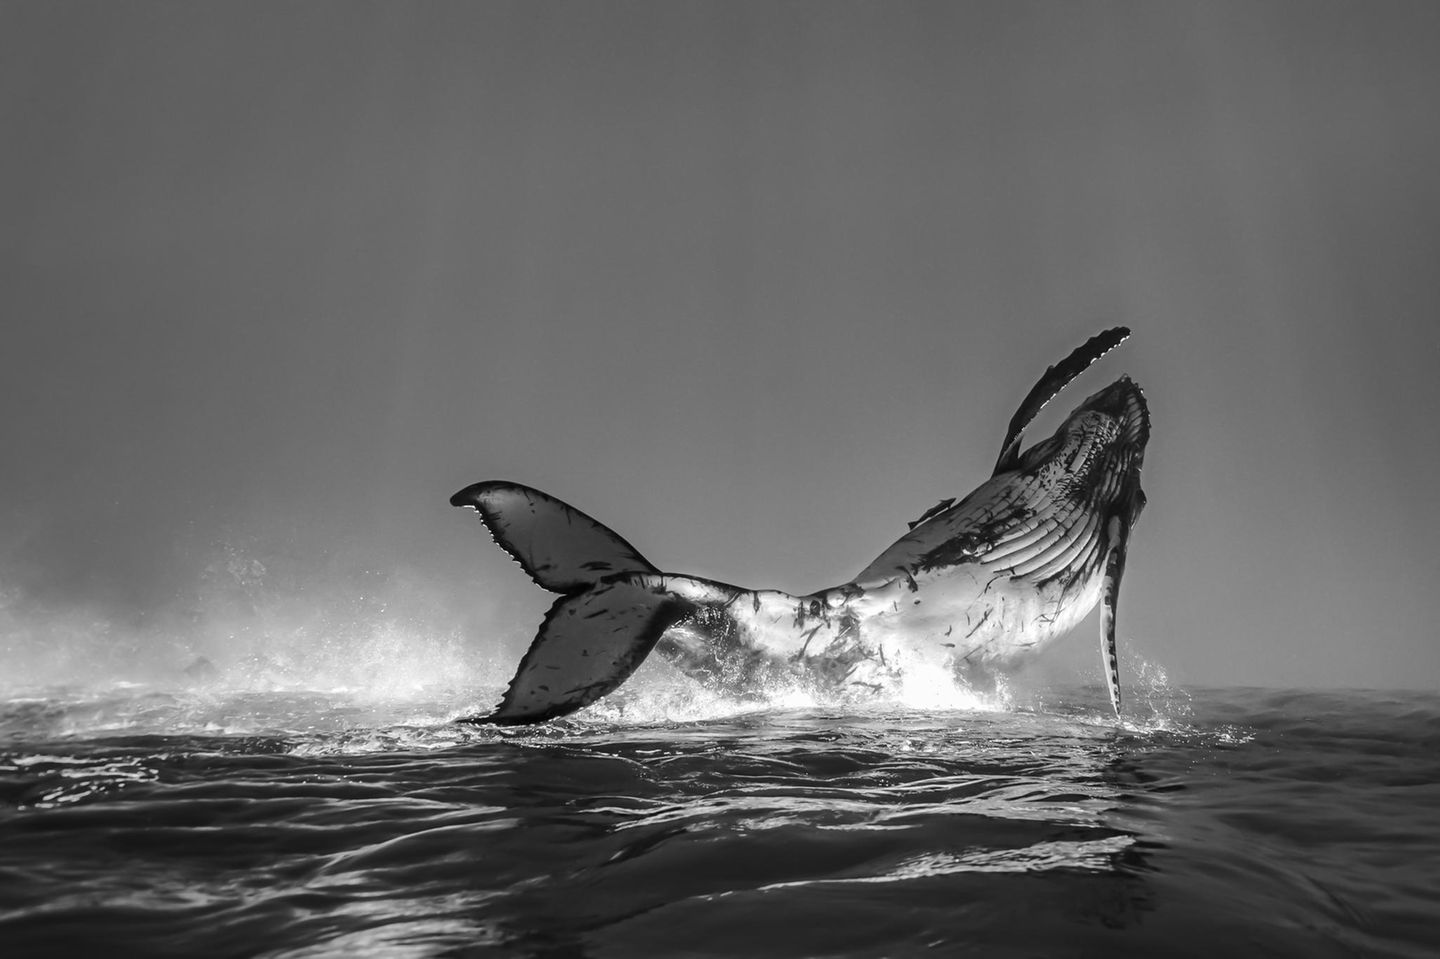 Ocean Photograpy Awards: Buckelwal